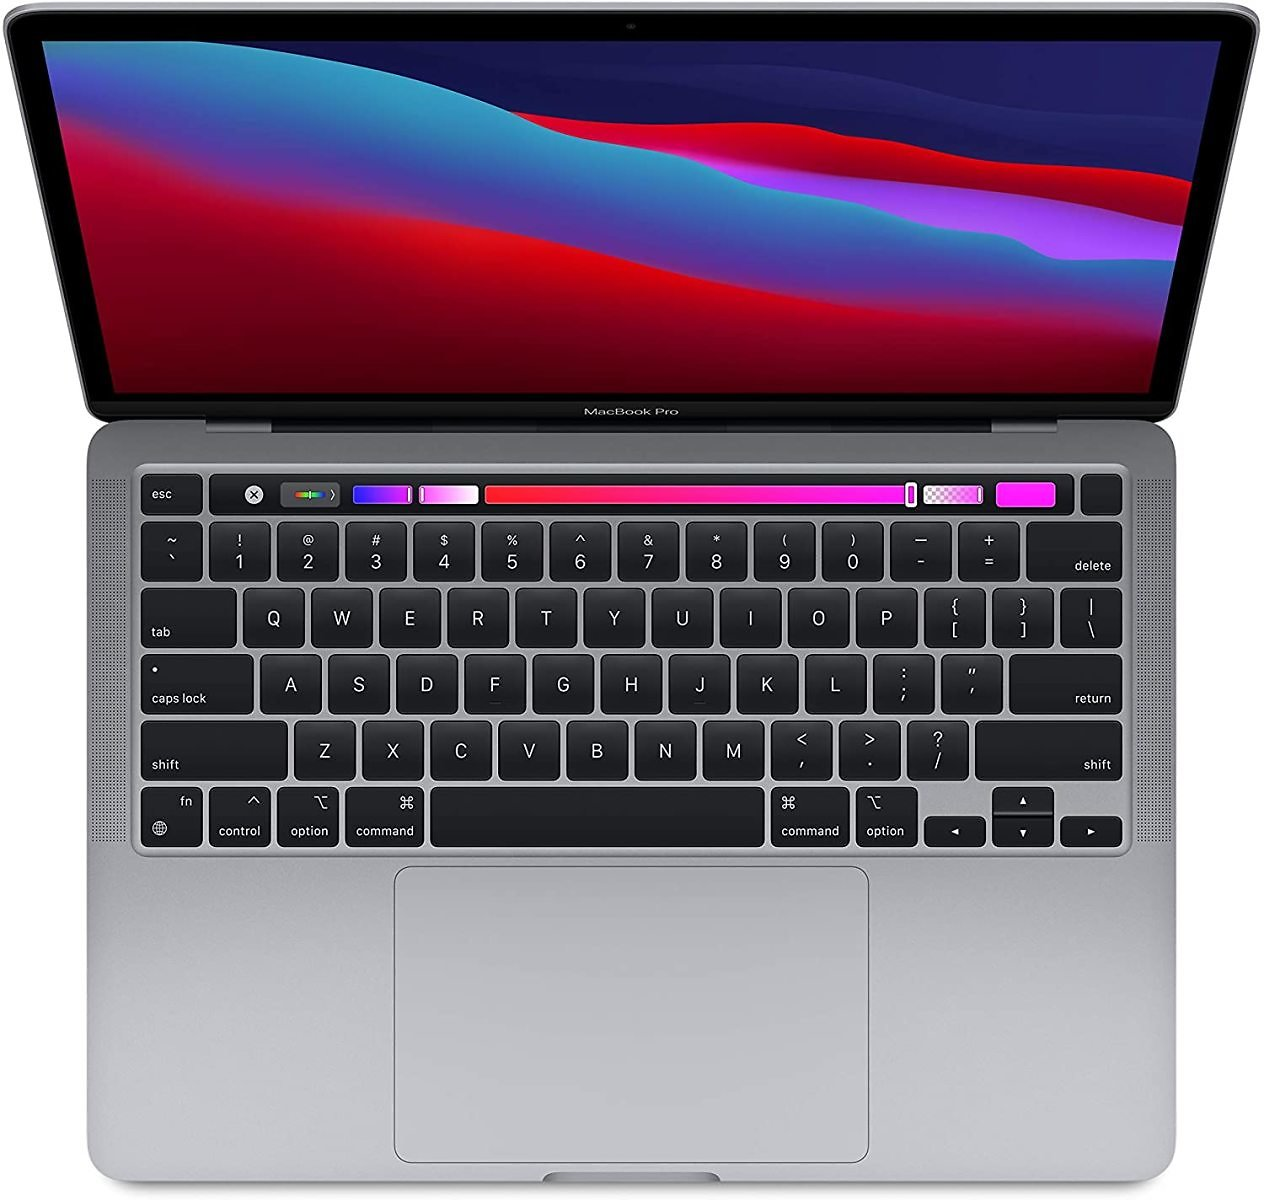 Apple MacBook Pro w/ Apple M1 Chip (256 GB)